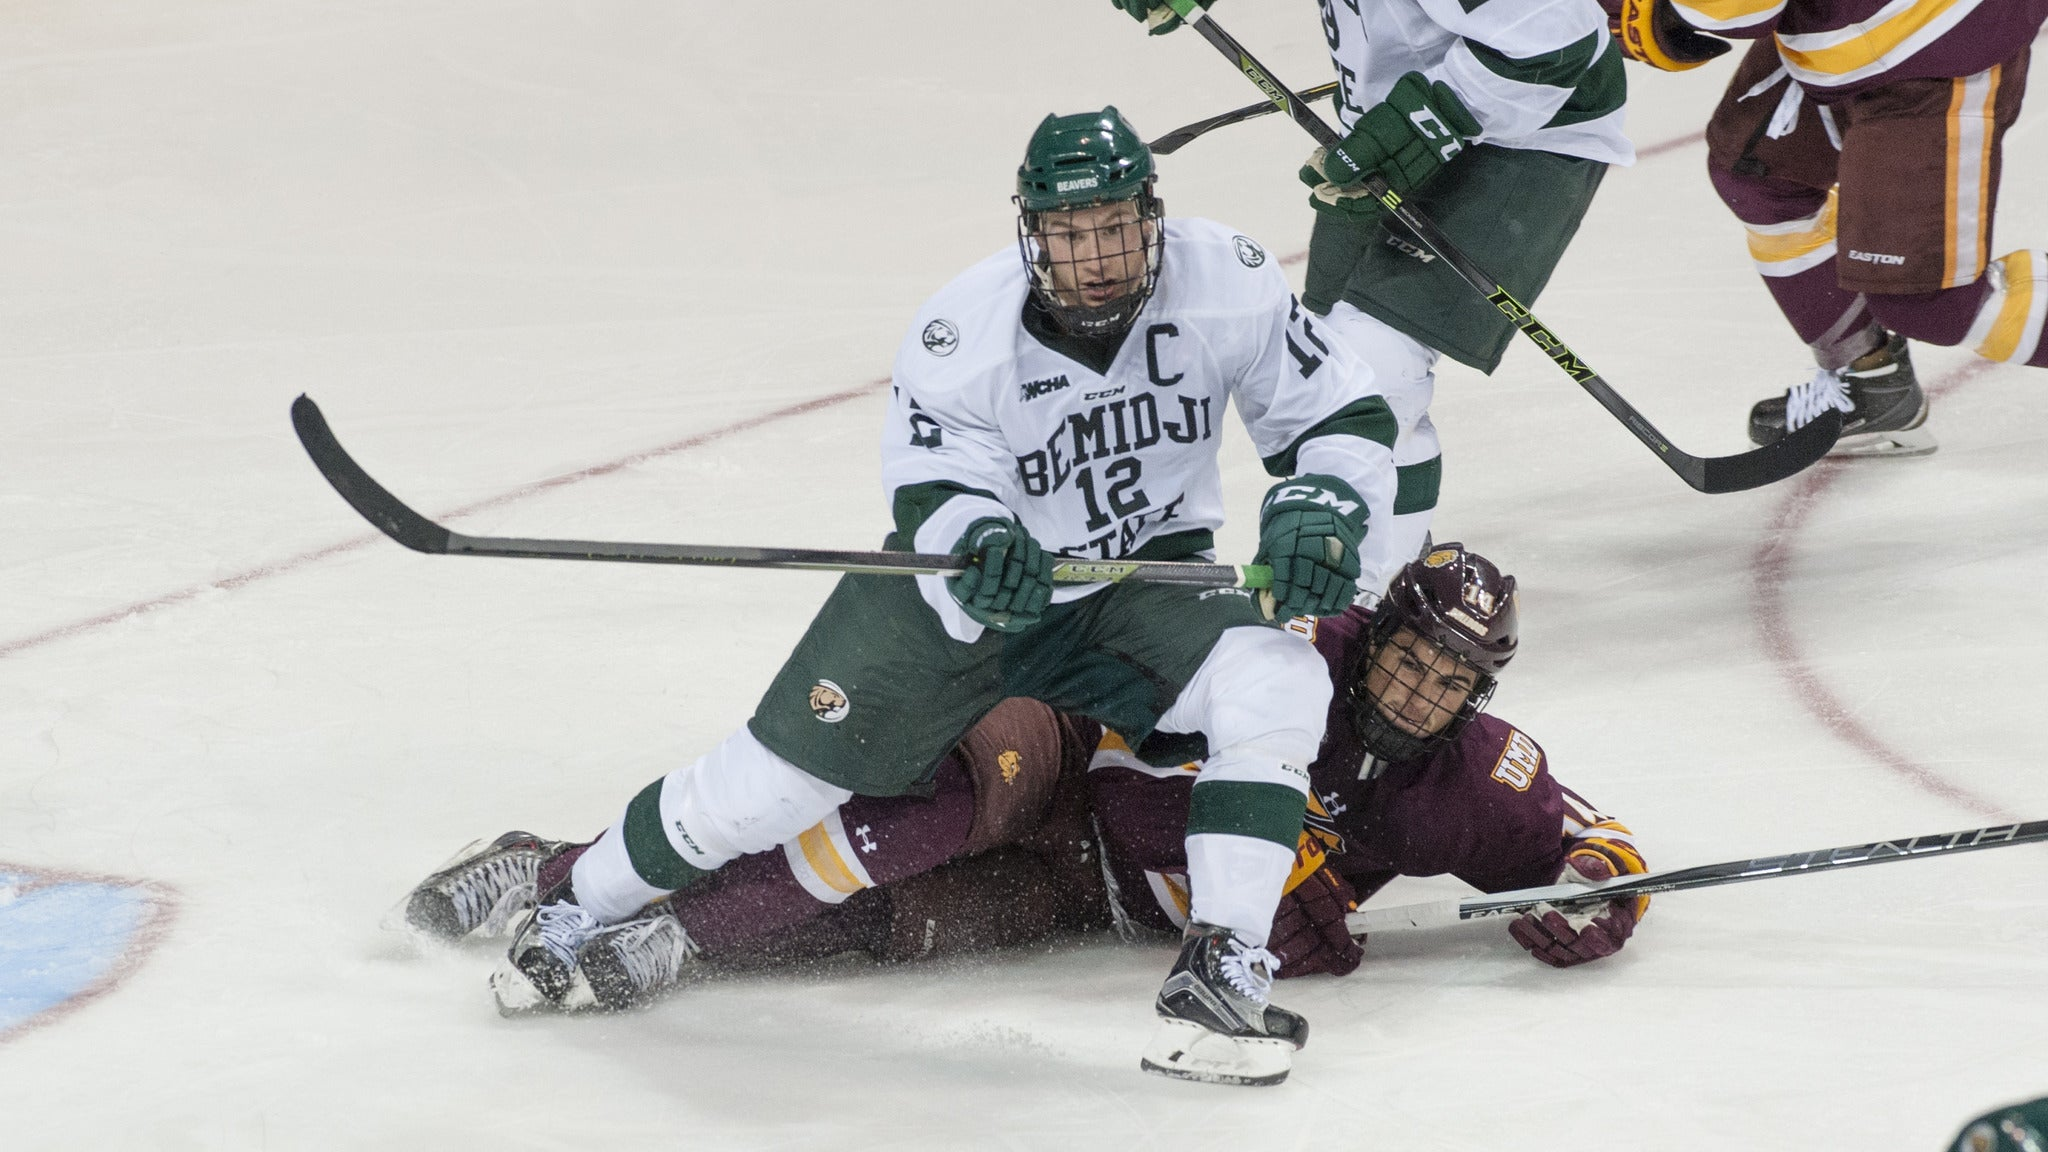 Bemidji State Beavers Mens Hockey vs. Northern Michigan - Bemidji, MN 56601